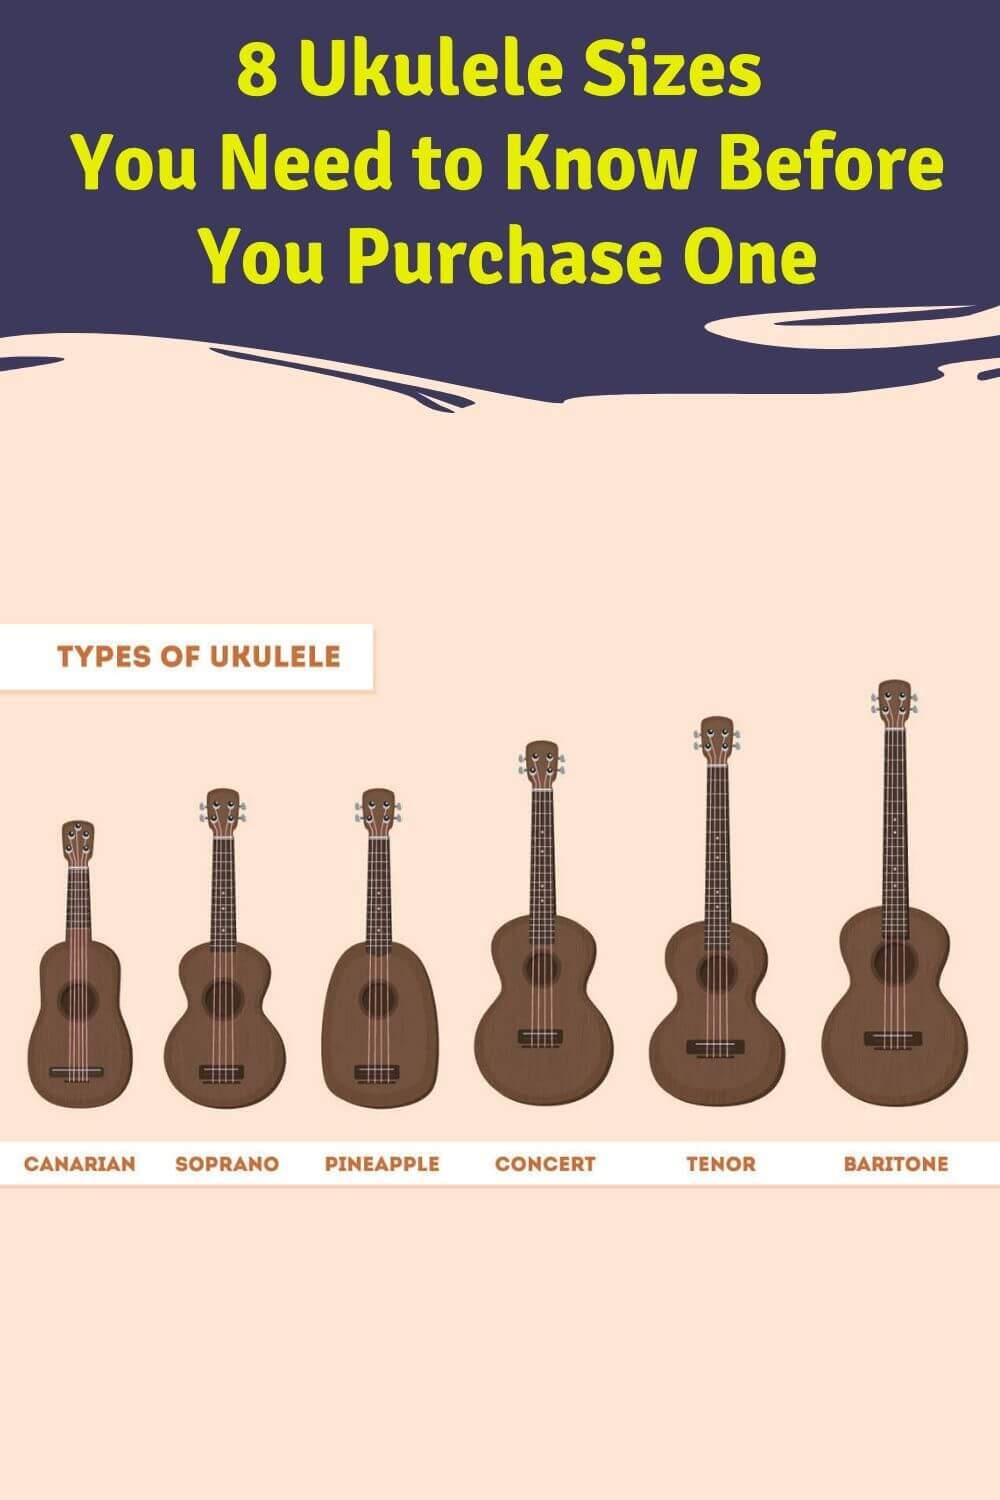 8 Ukulele Sizes You Need to Know Before Your Purchase One